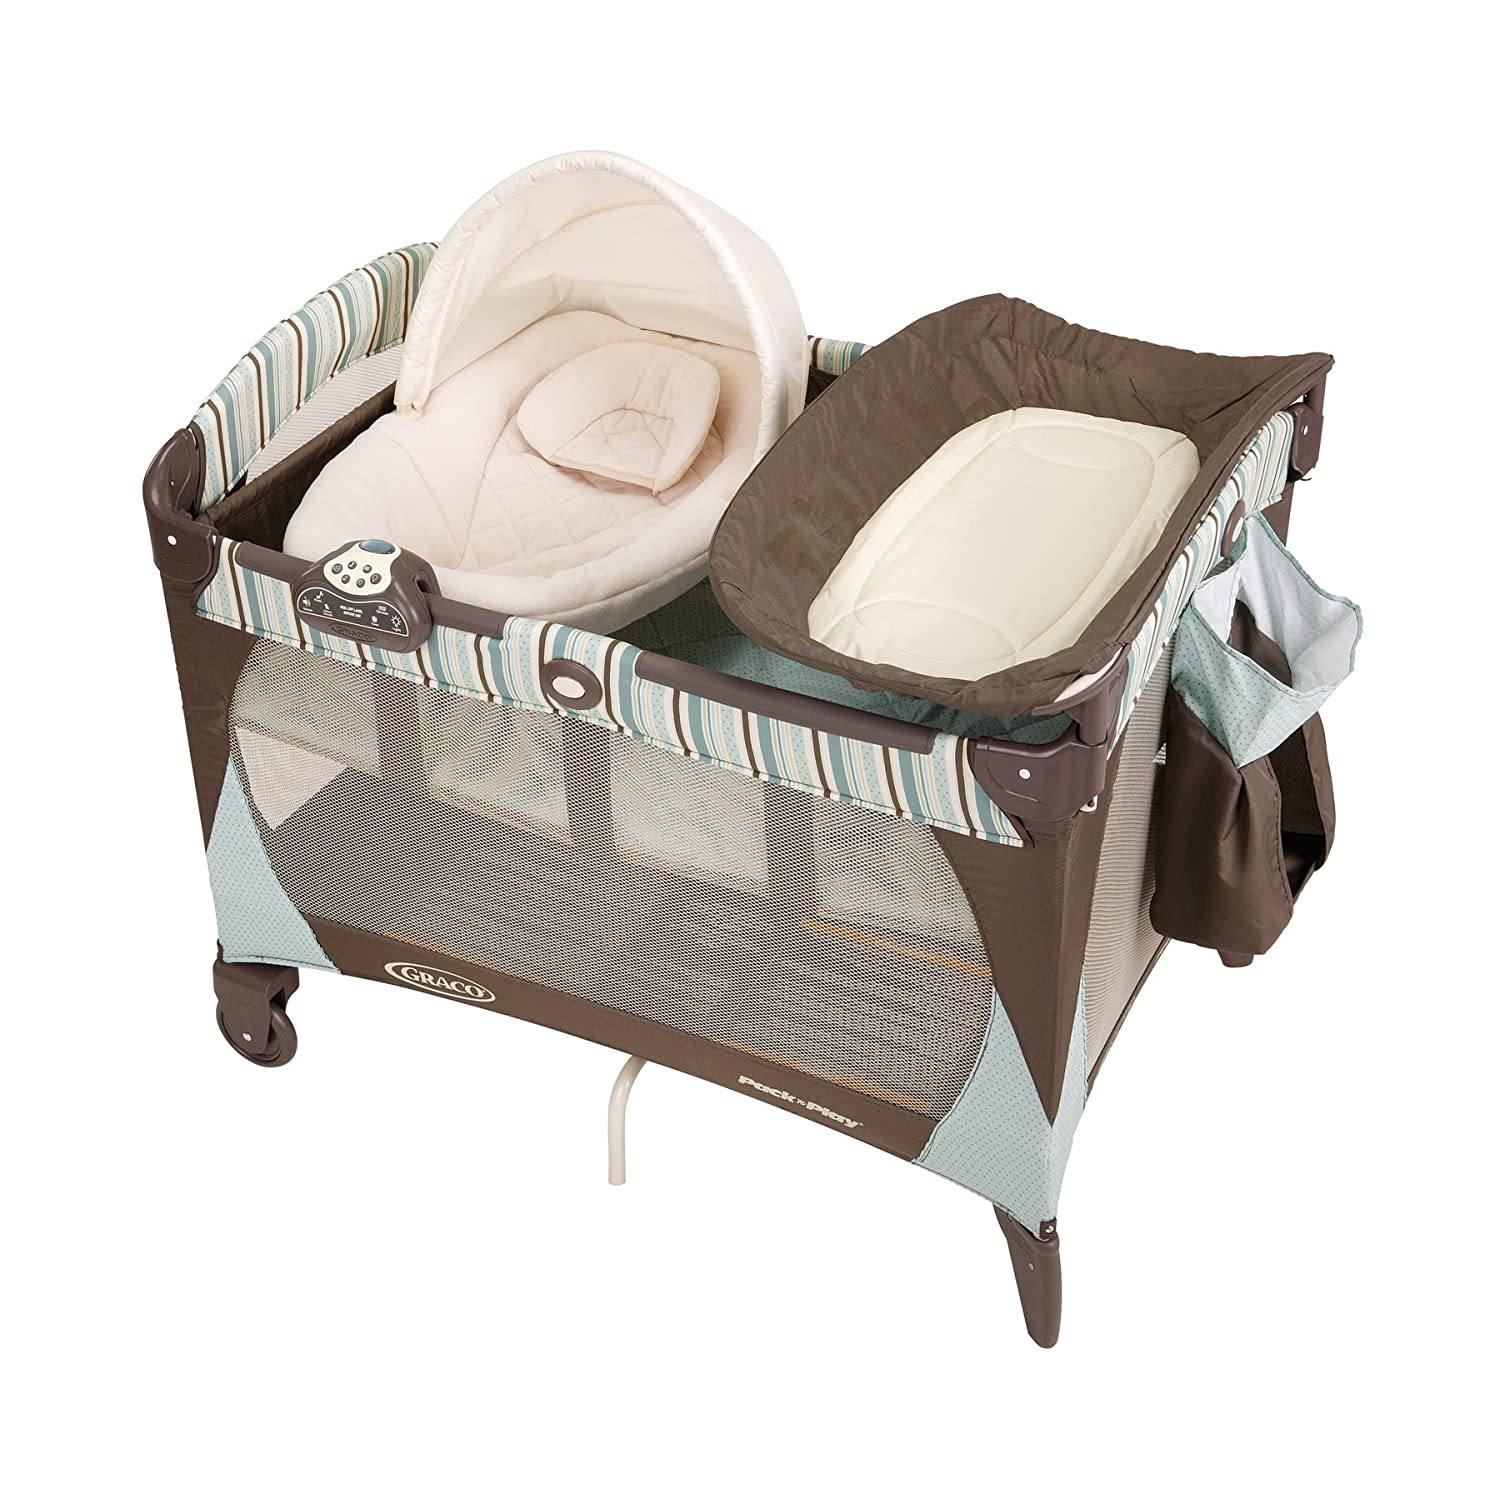 newborn sleepingin pack n play babycenter. Black Bedroom Furniture Sets. Home Design Ideas